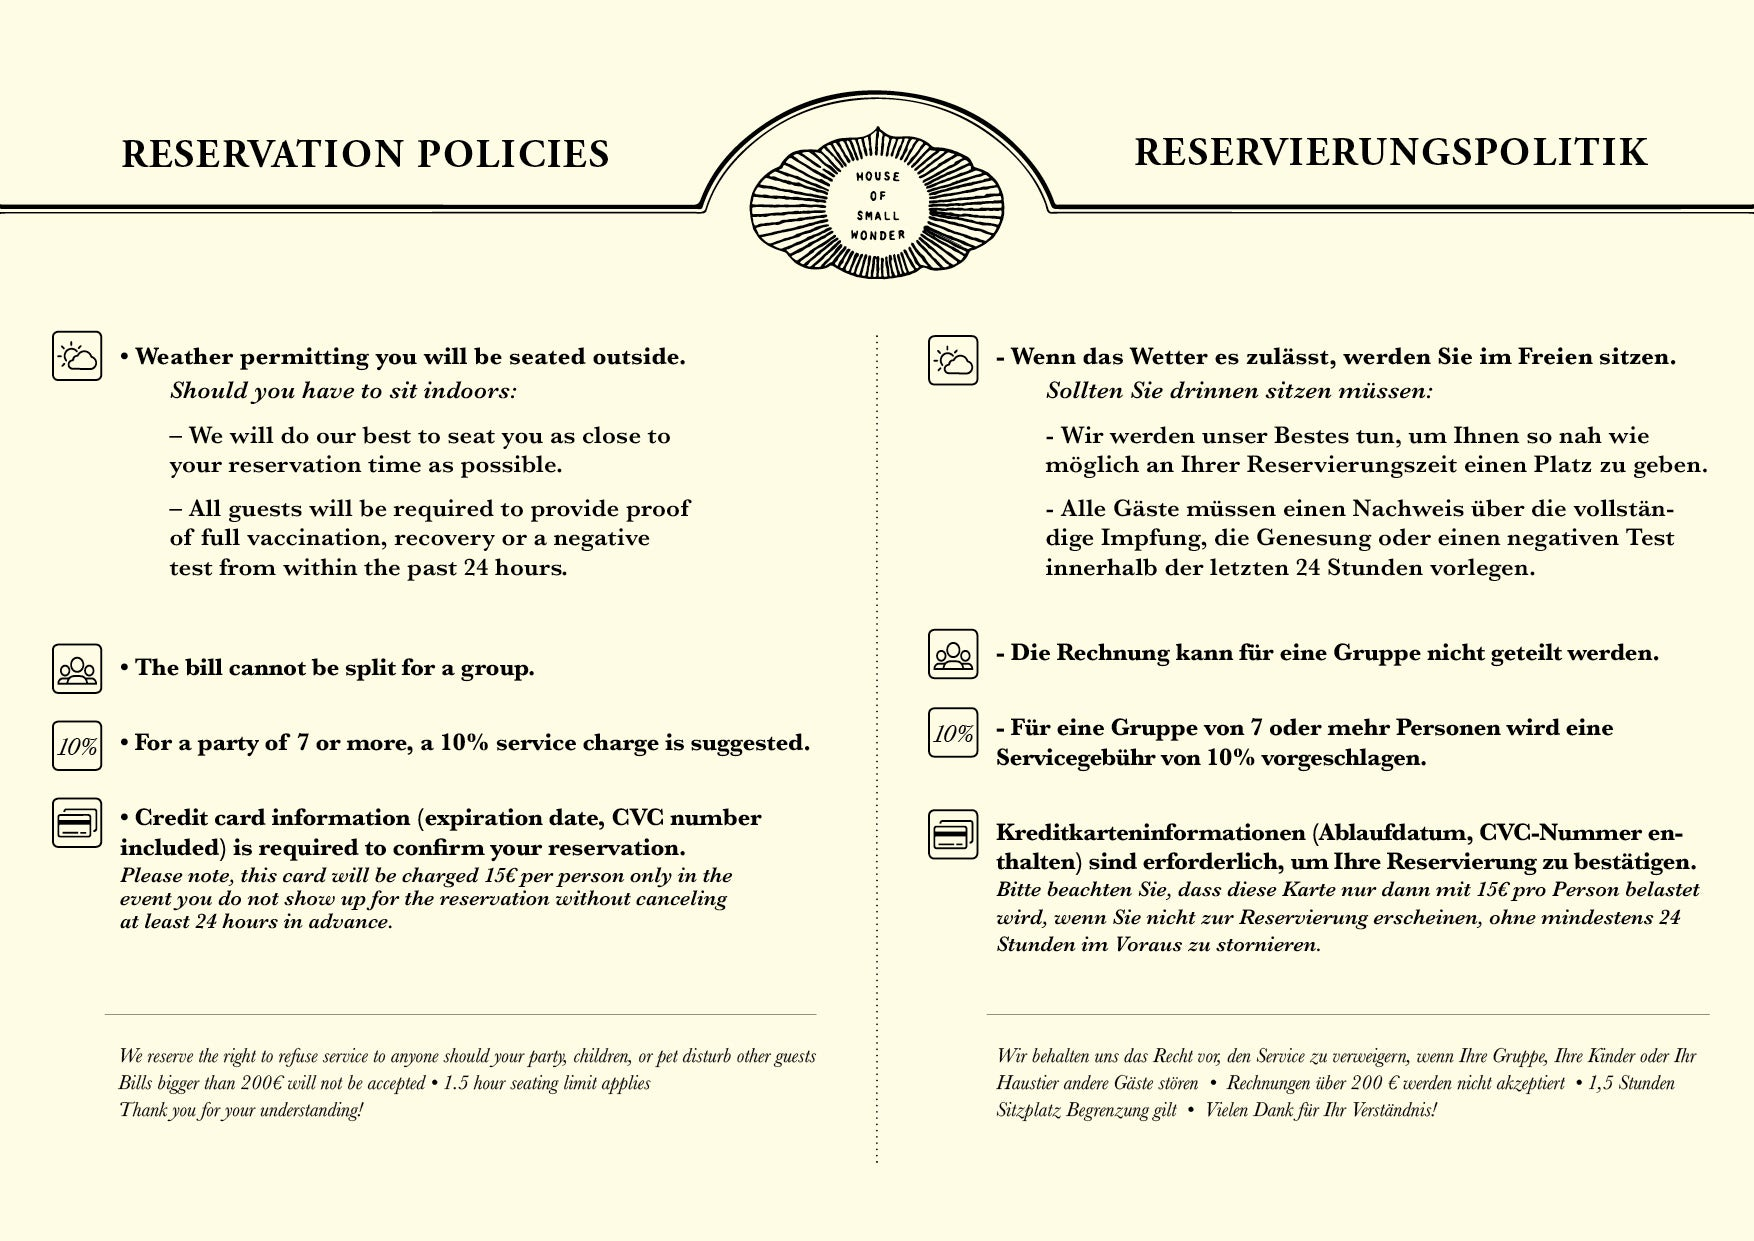 HOSW RESERVATION POLICIES